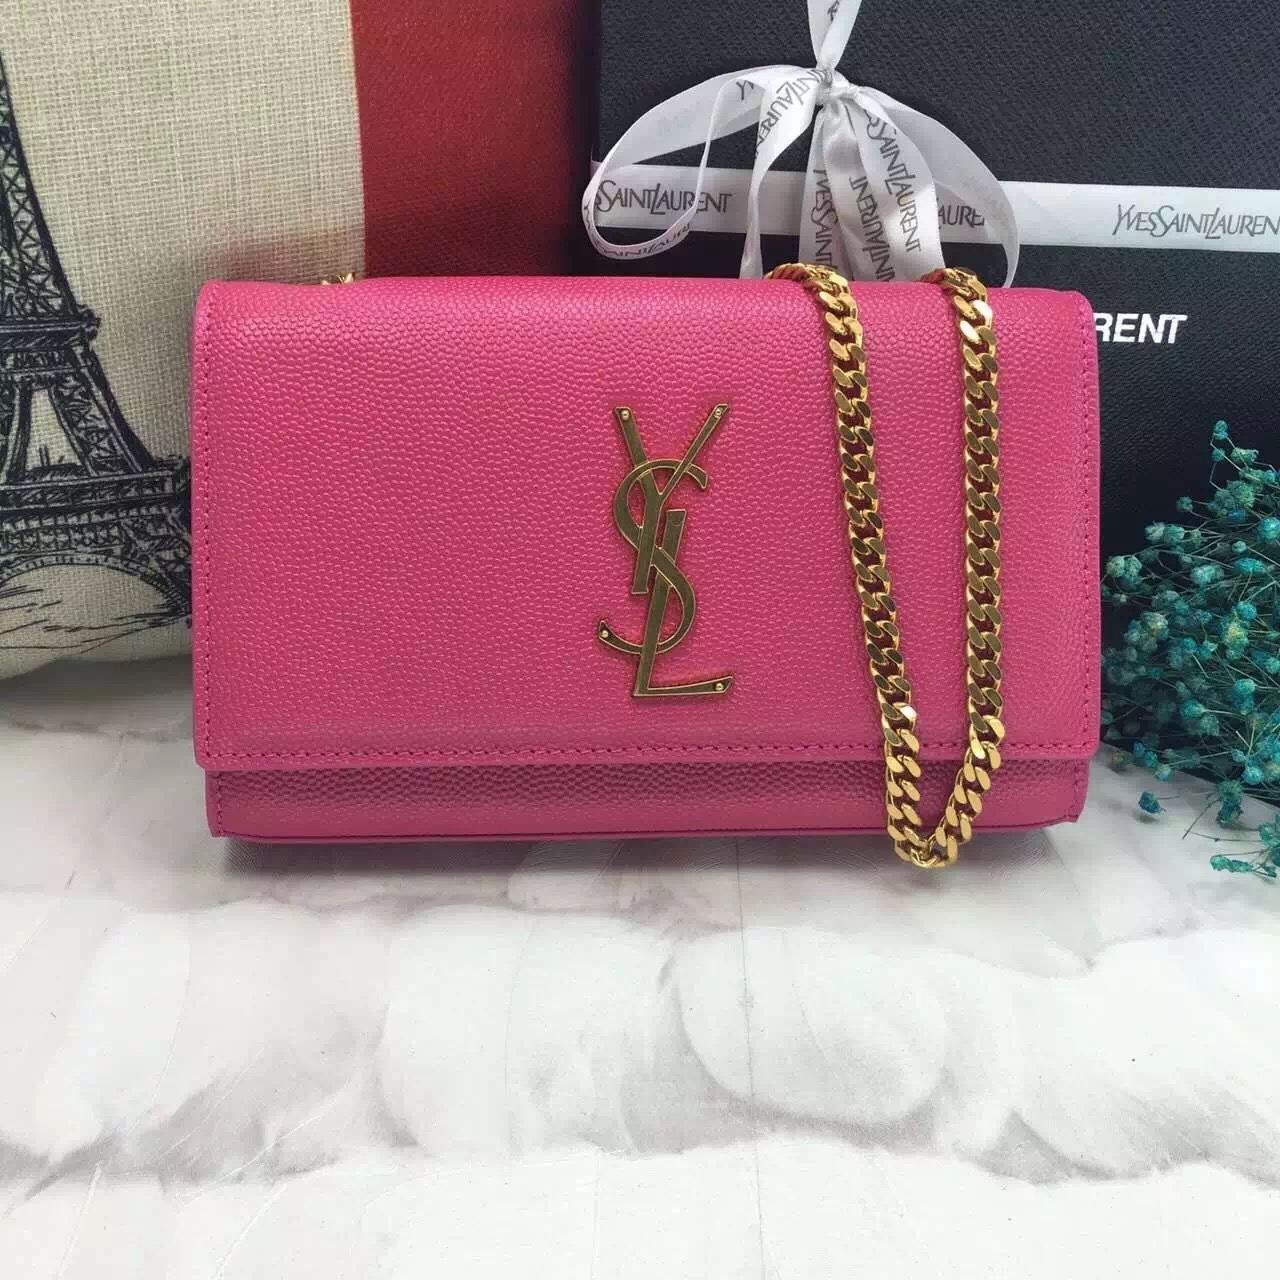 YSL Caviar Leather Chain Bag 22cm Rose Gold